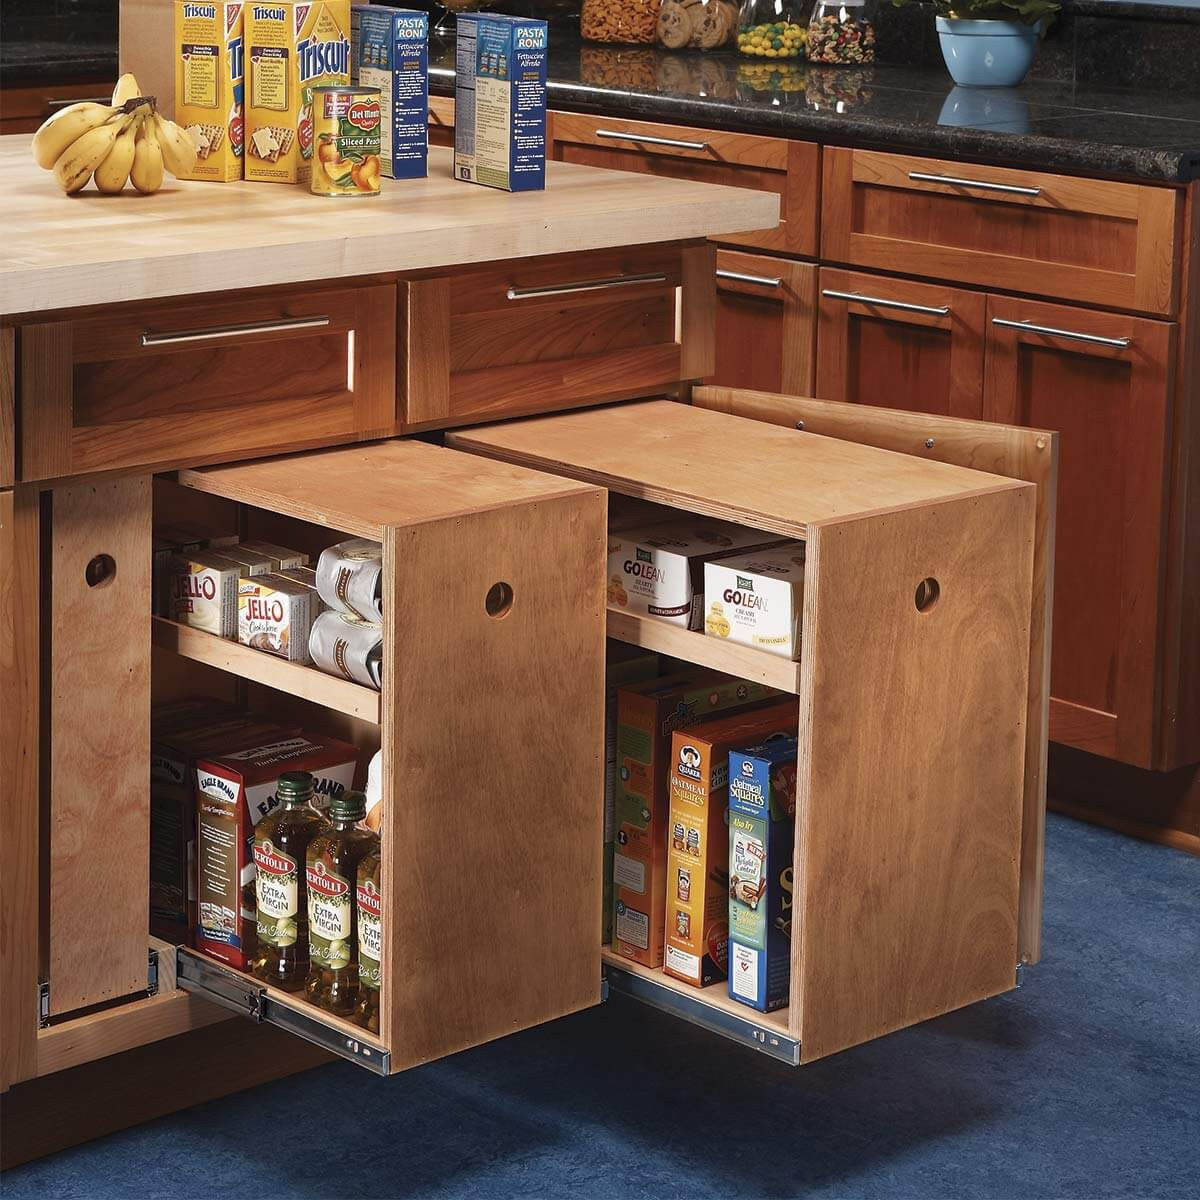 23. Roll-out Style Kitchen Cabinet Idea